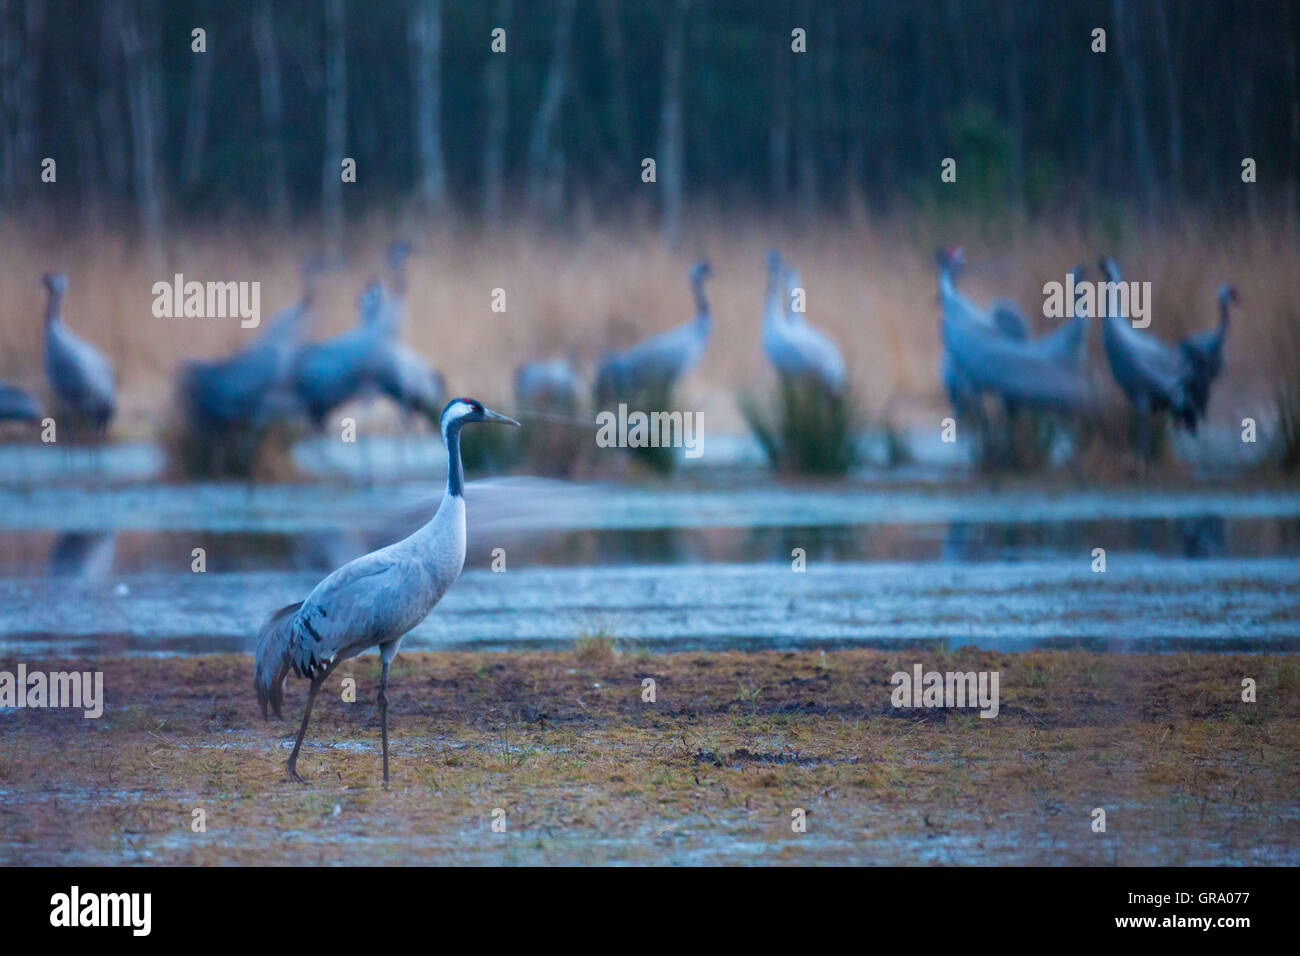 Cranes At The Resting Place In The Swamp - Stock Image